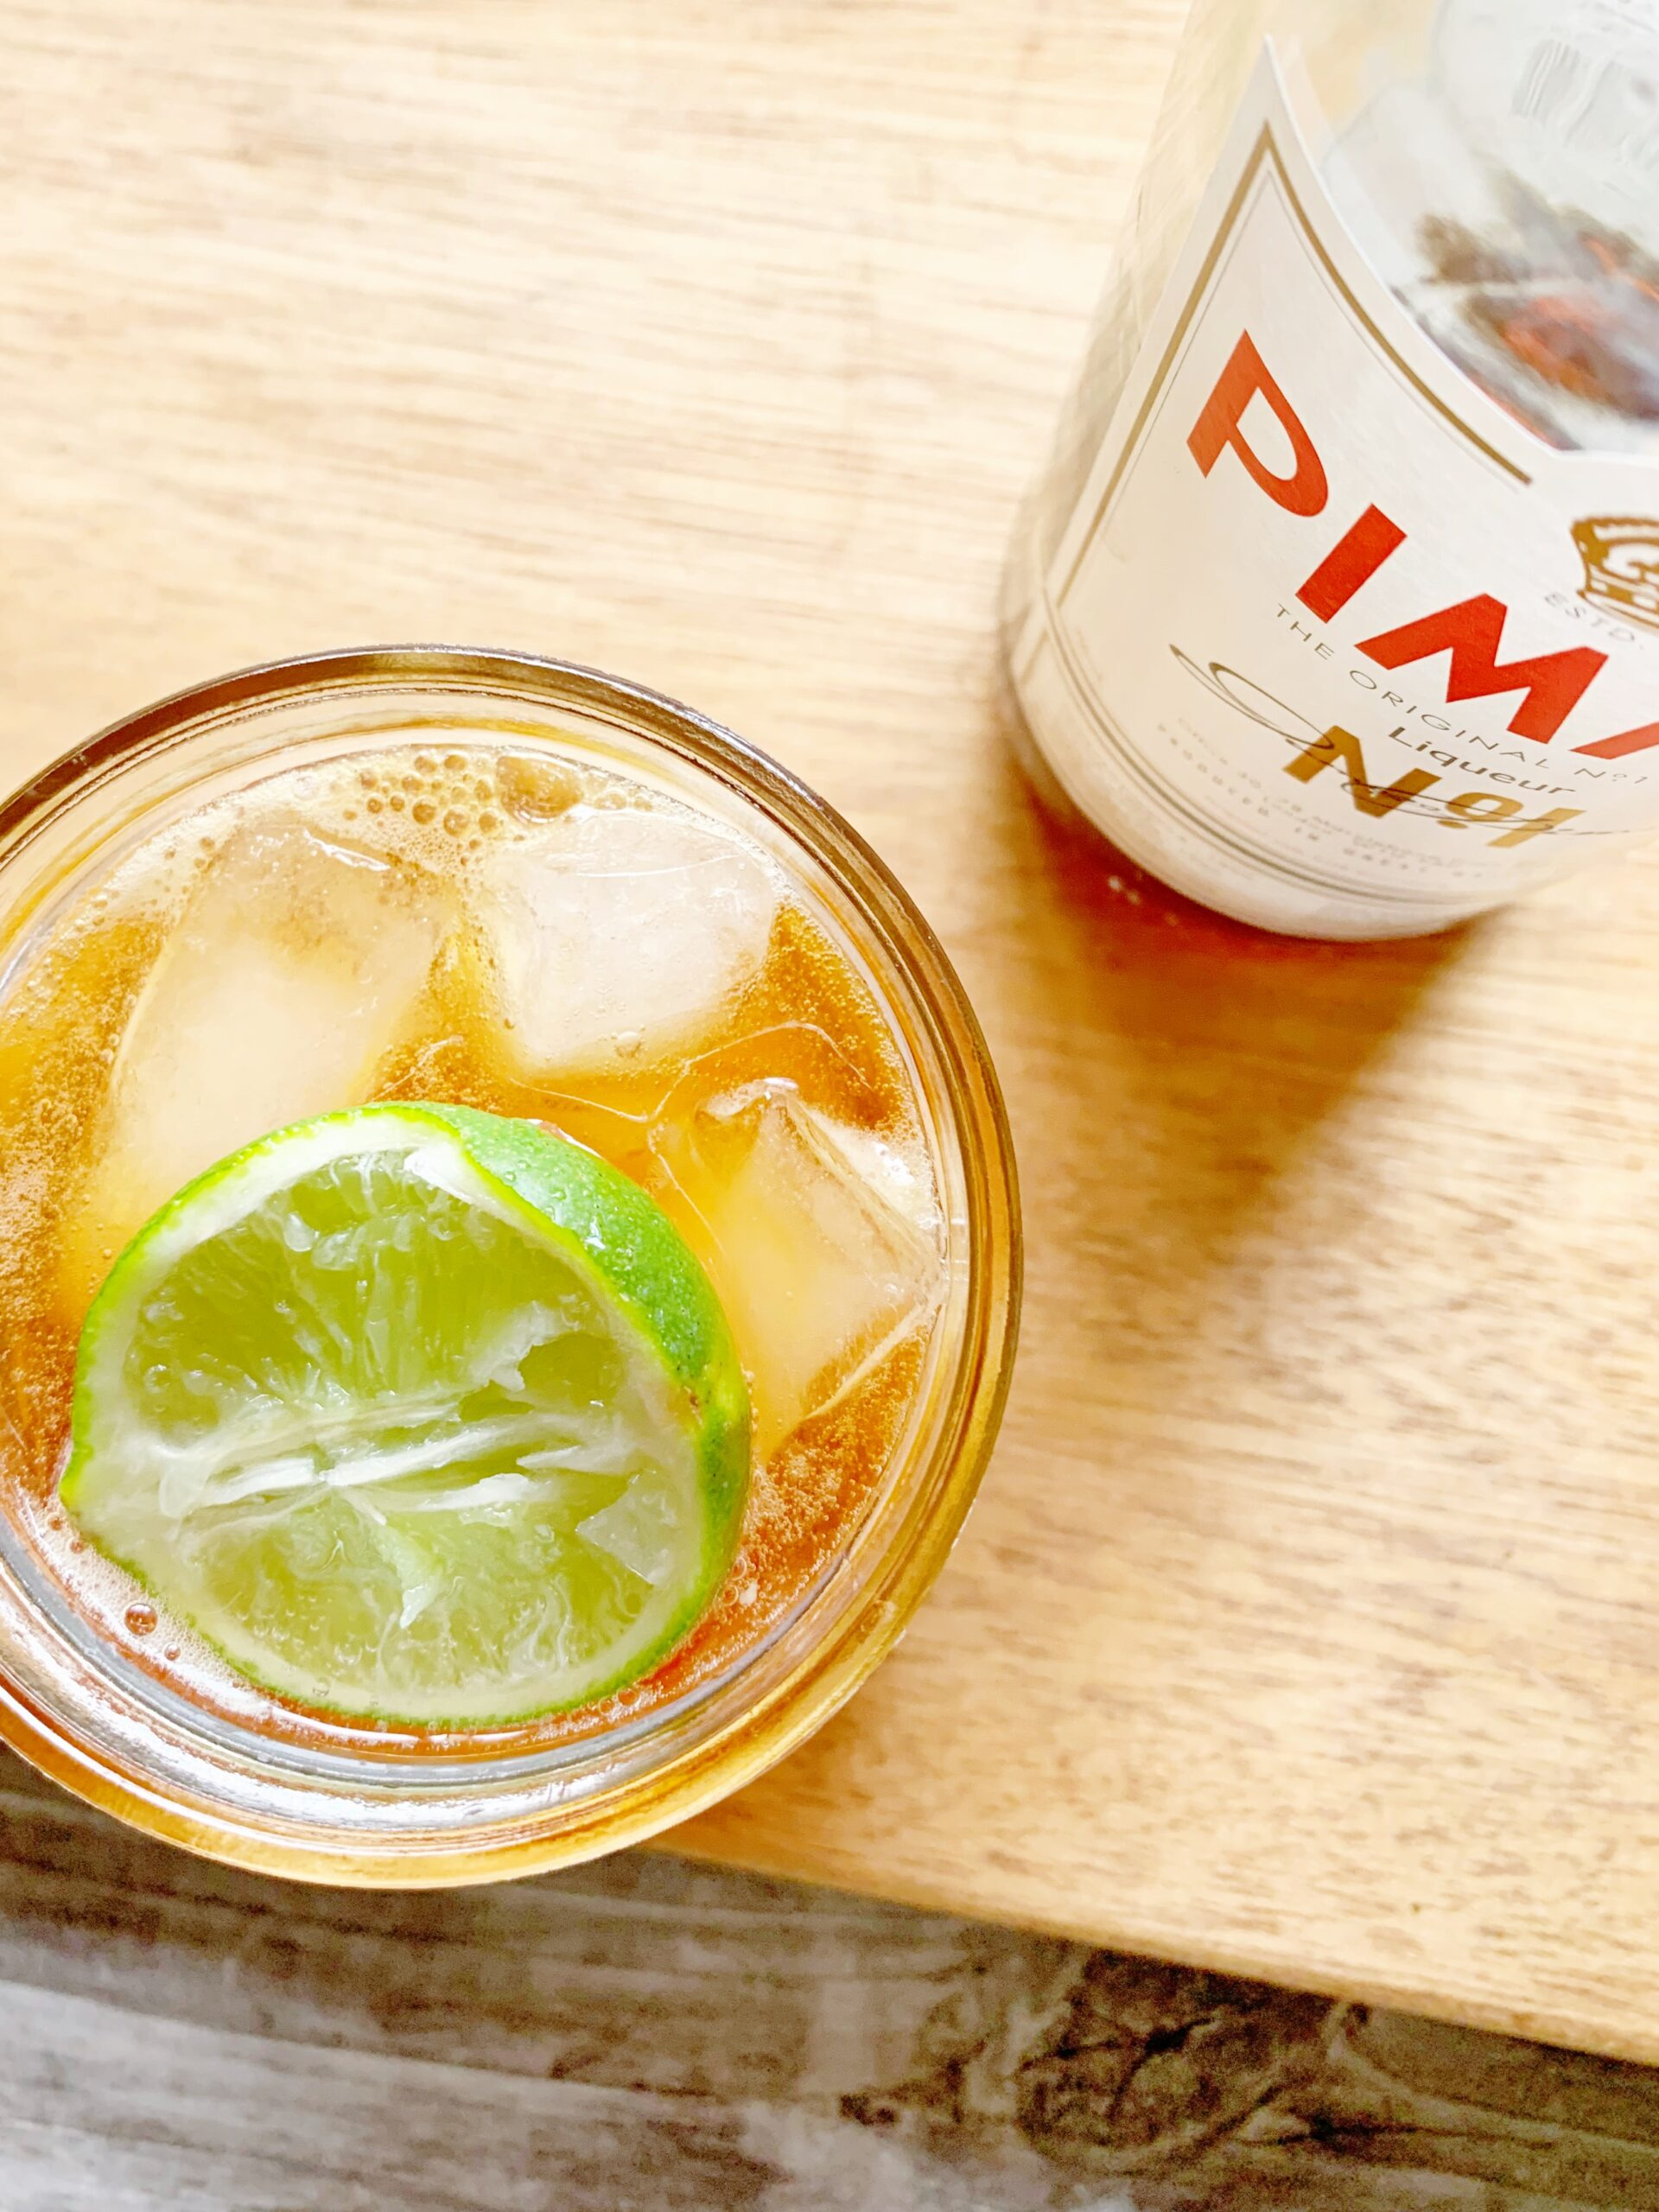 Easy Pimm's Cup recipe